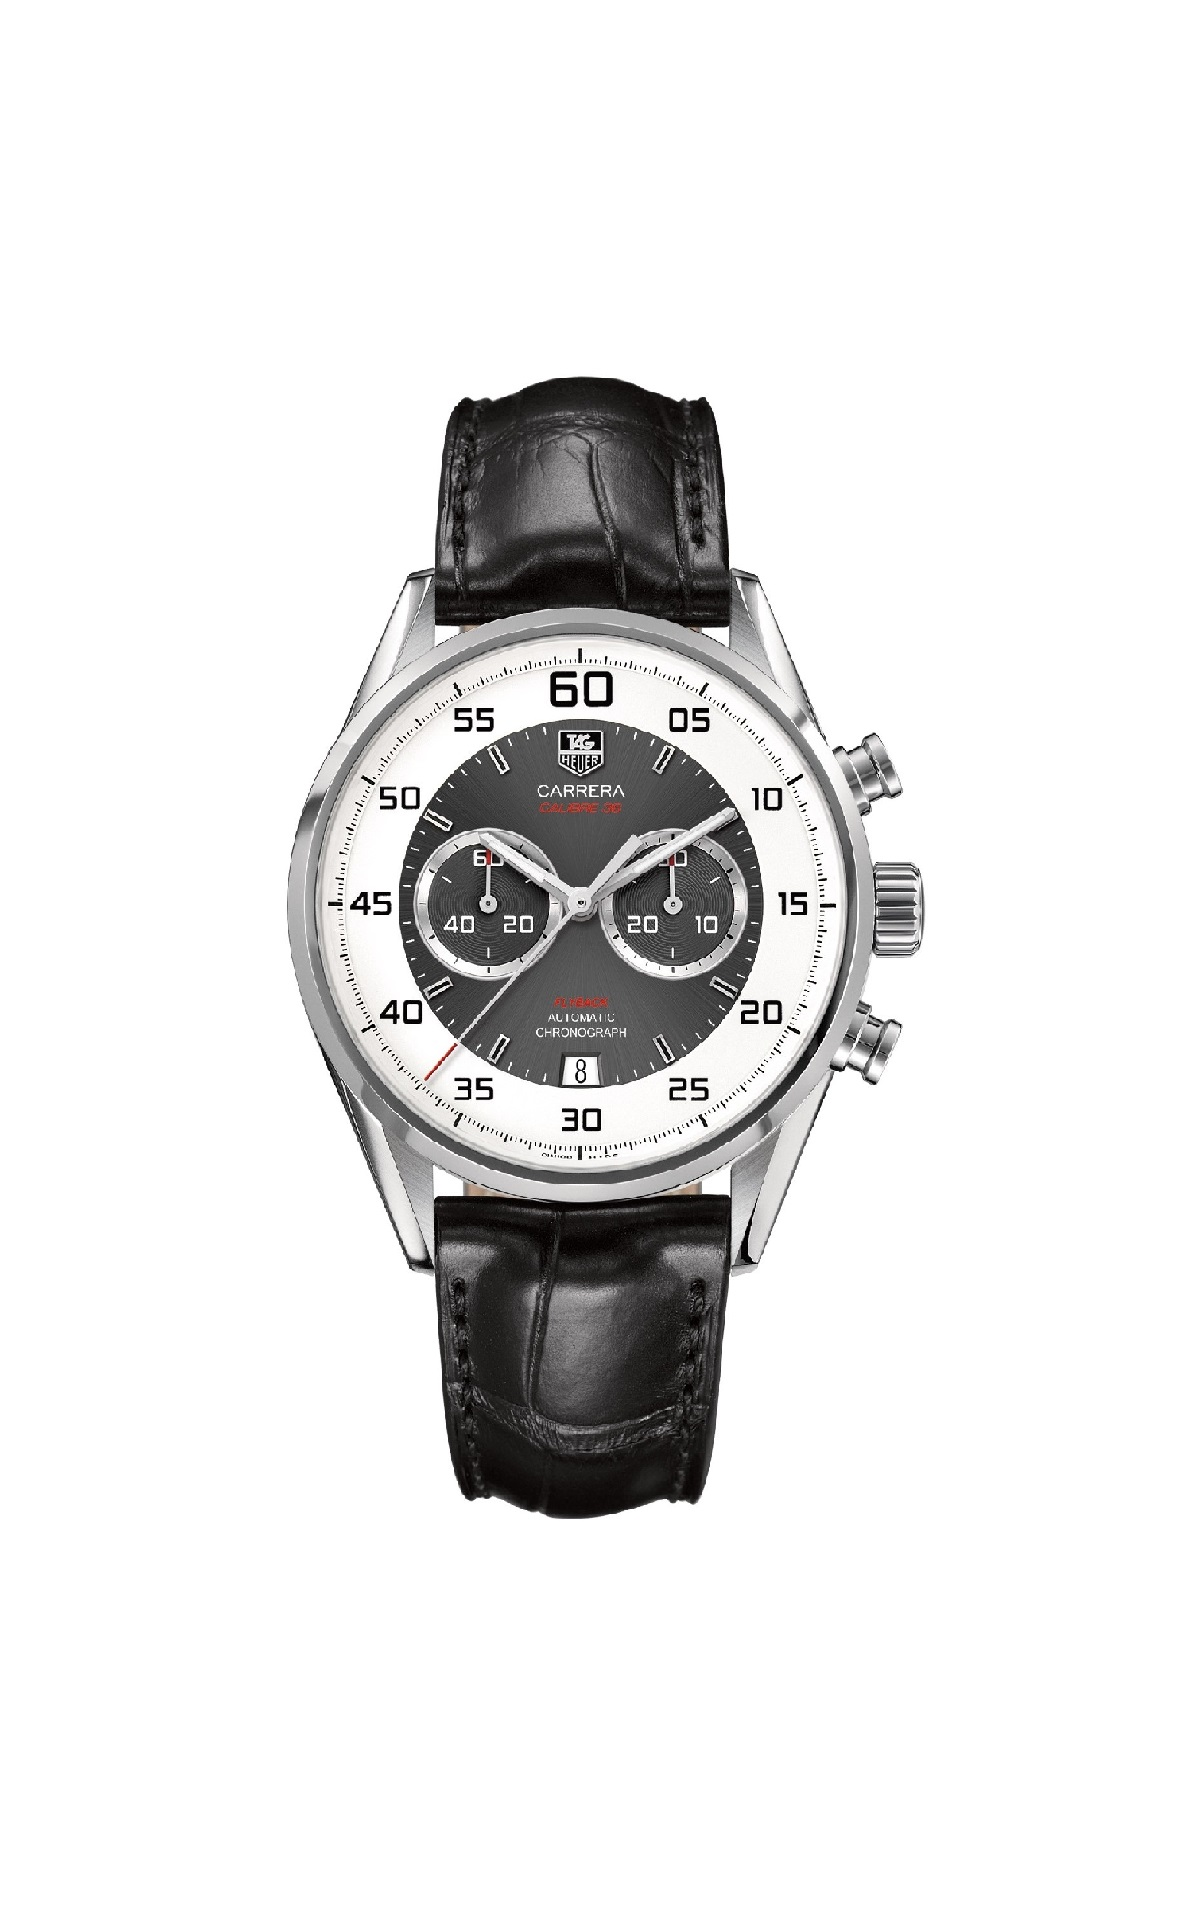 CARRERA 43mm AUTOMATIC CHRONOGRAPH, CALIBER 36 WHITE AND GREY COMBINATION ON DIAL